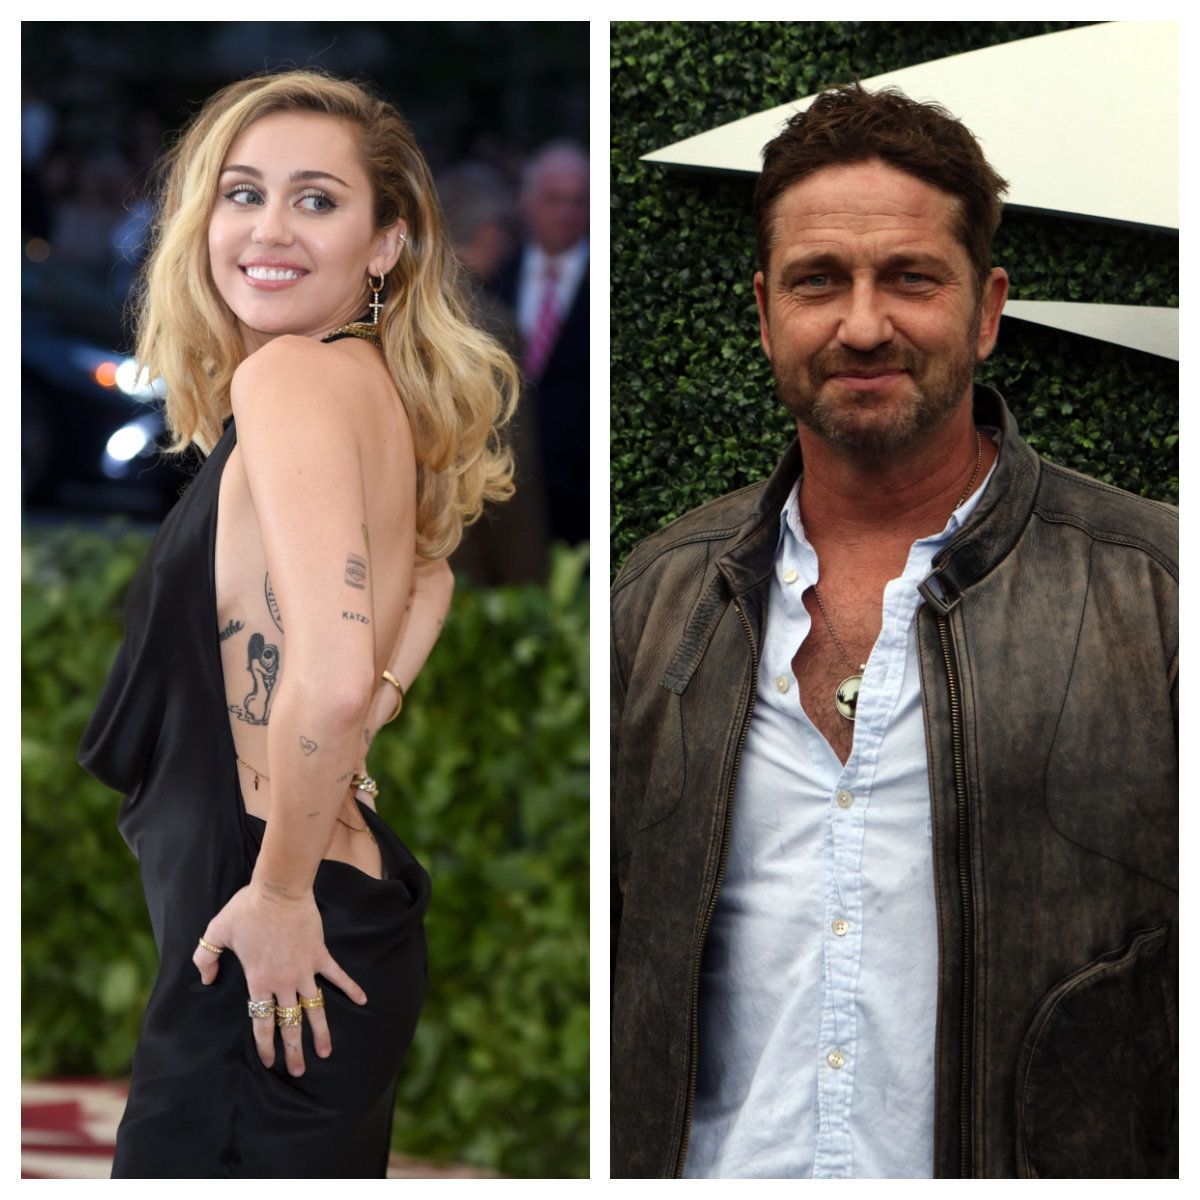 Miley Cyrus And Gerard Butler 'Heartbroken' And 'Devastated' After Homes Destroyed In California